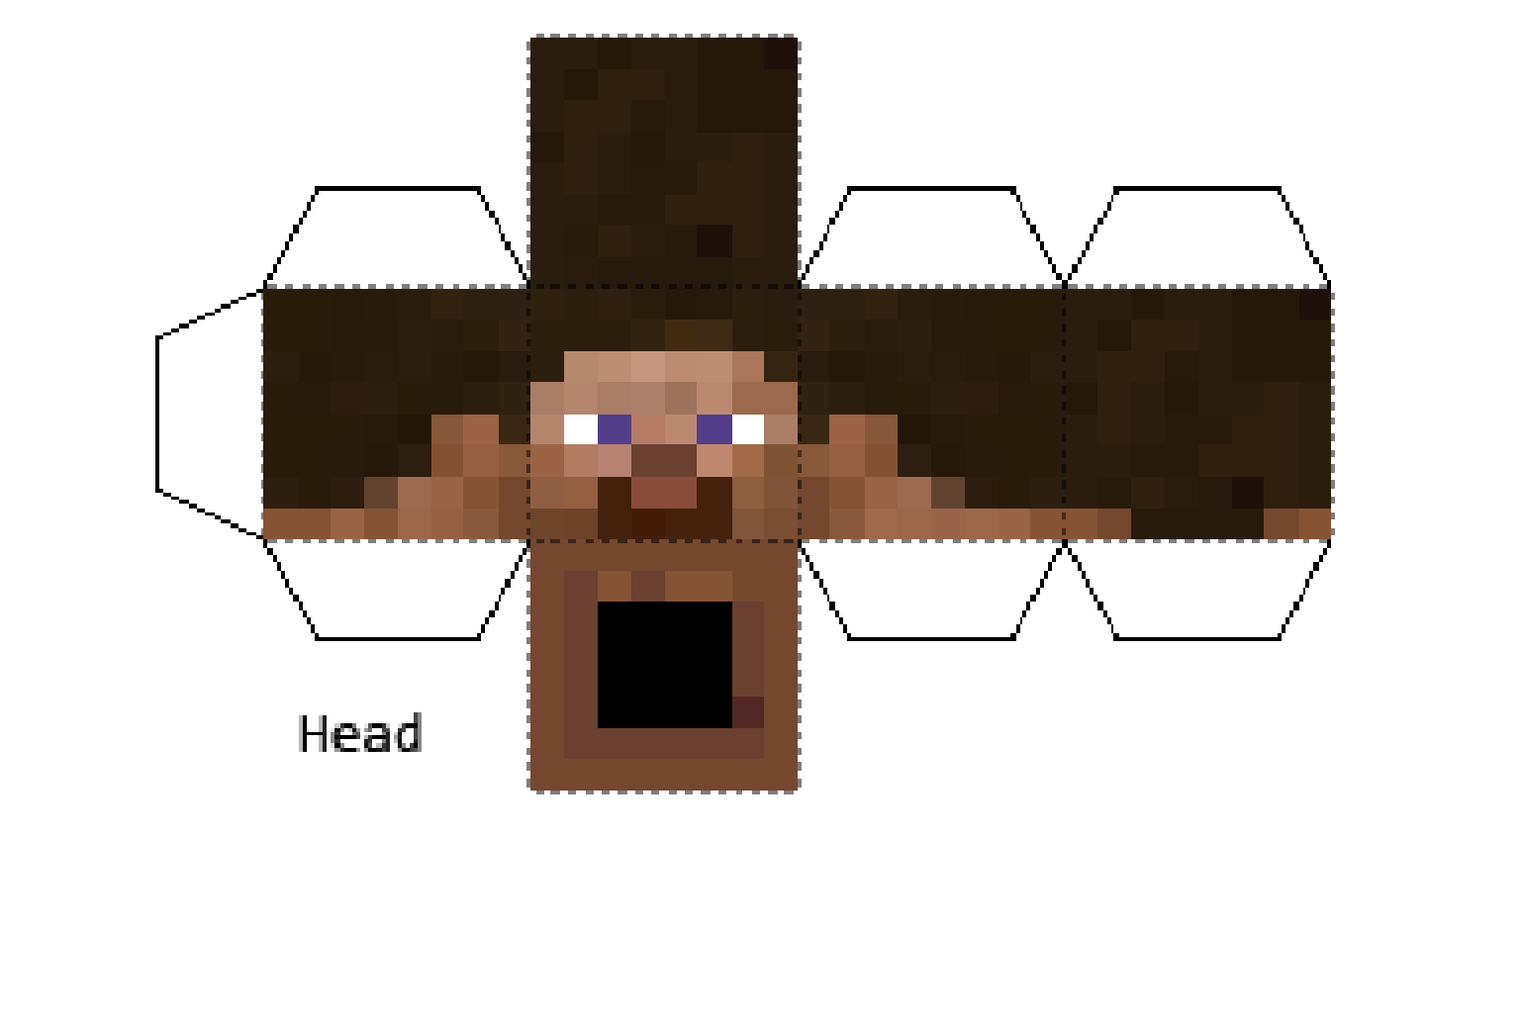 Assemble the Head and Arms